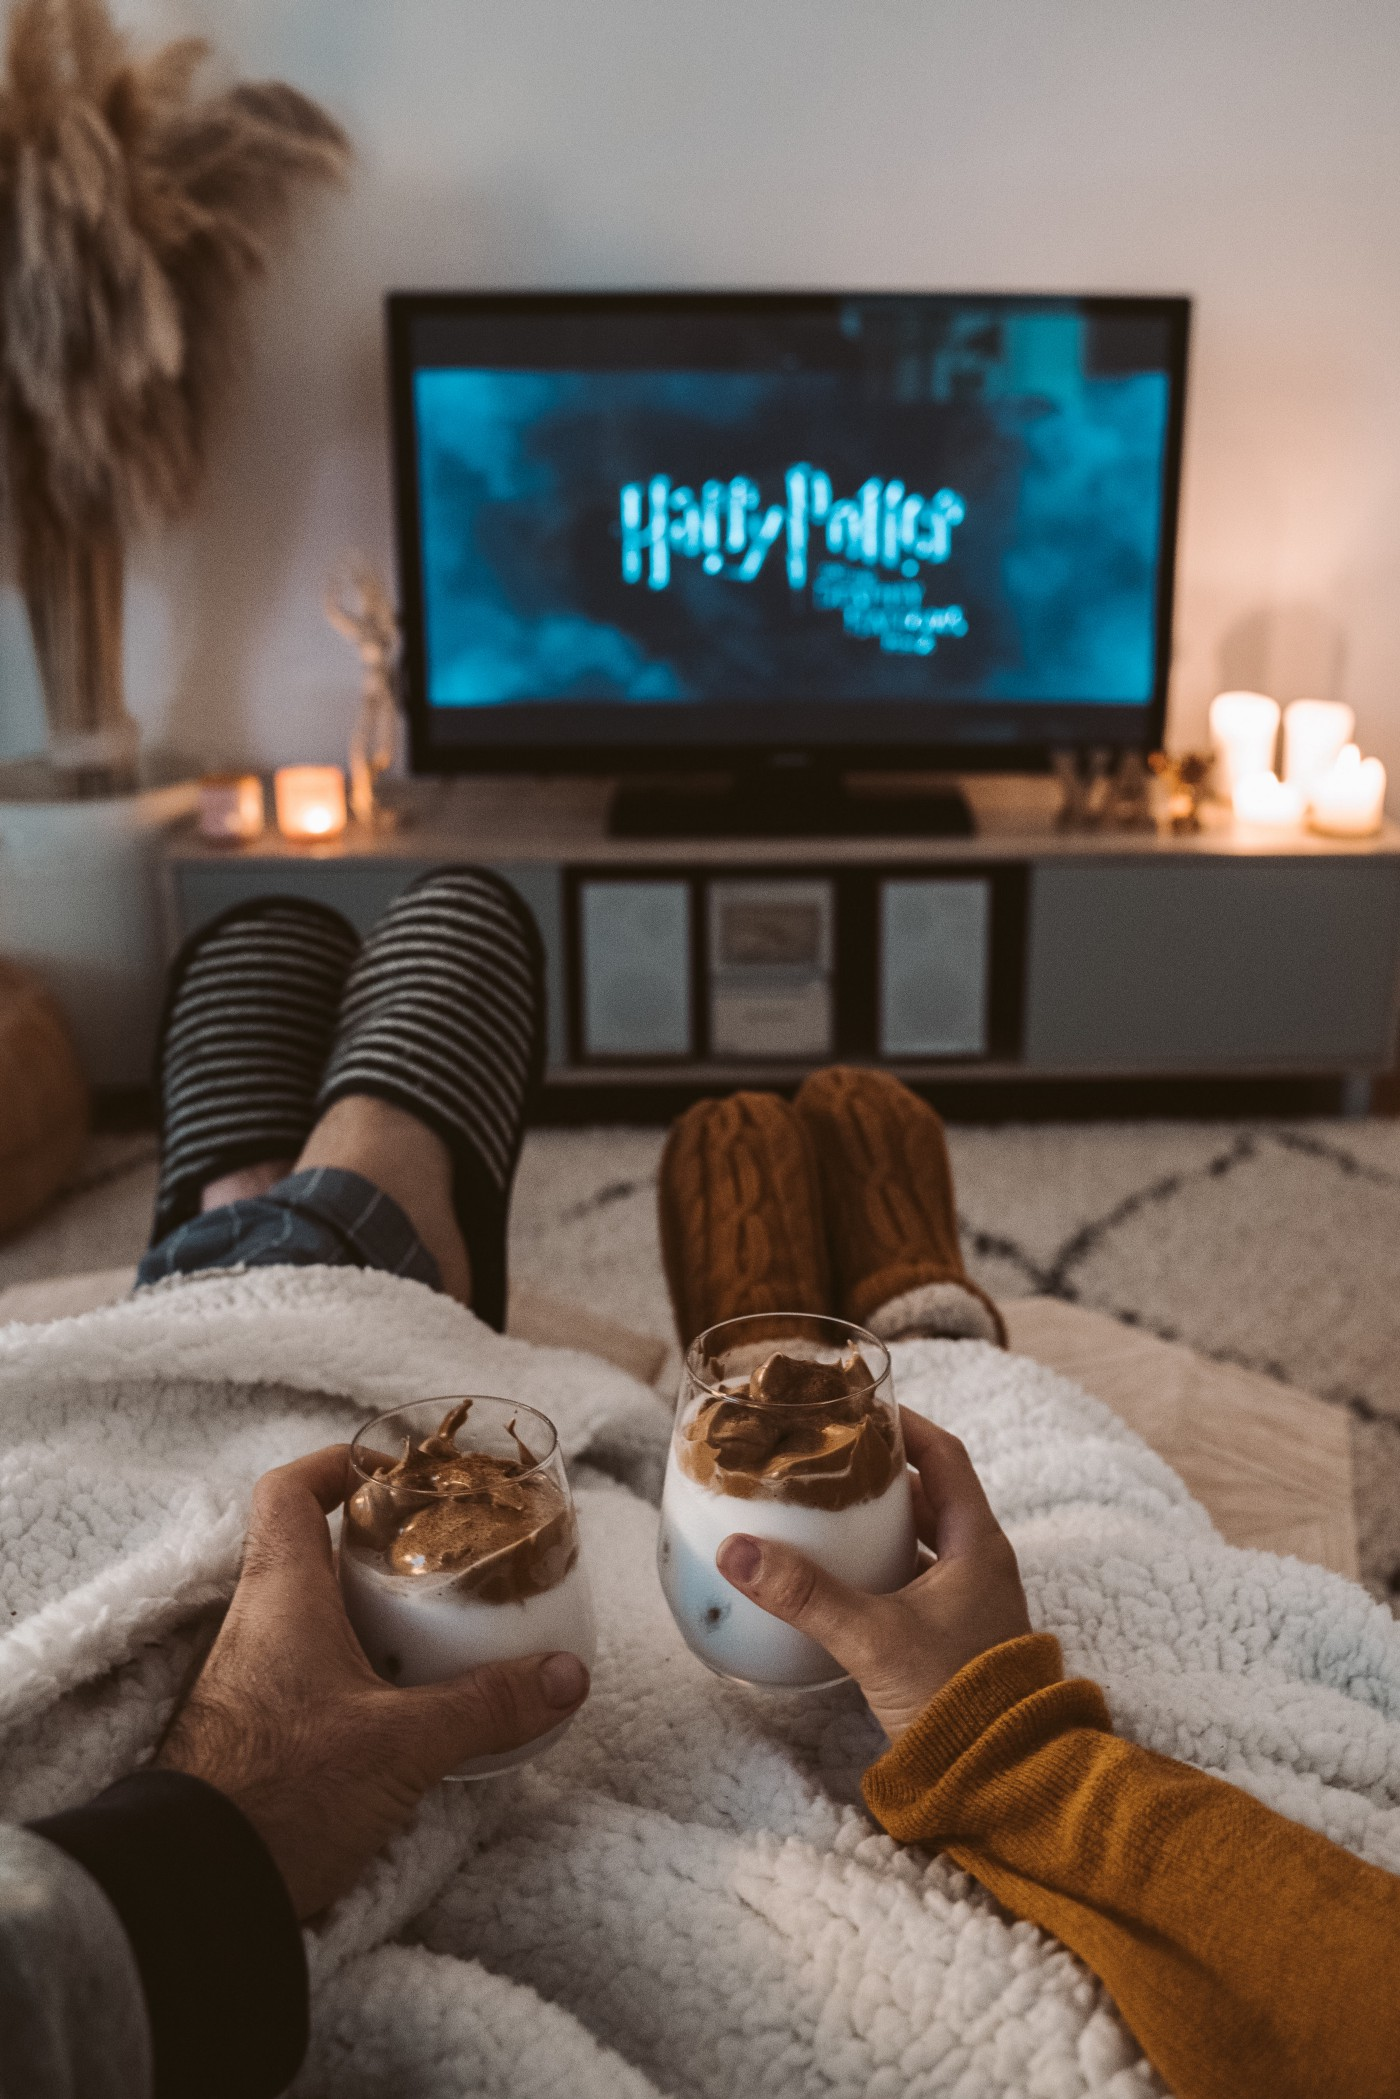 A couple watching TV with slippers on drinking coffee